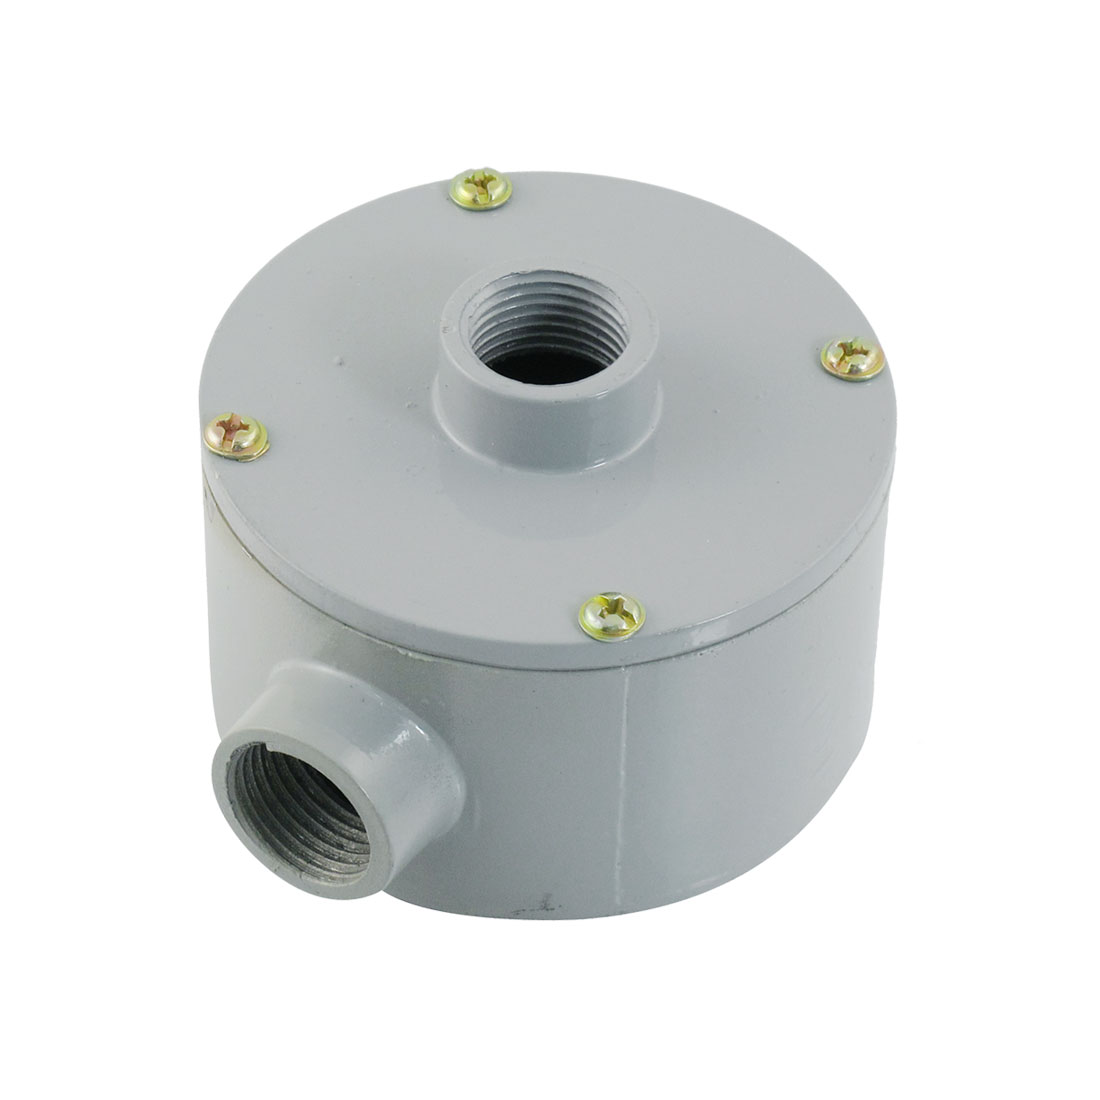 "G1/2"" Thread Three Holes Conduit Wiring Round Metal Outlet Box"